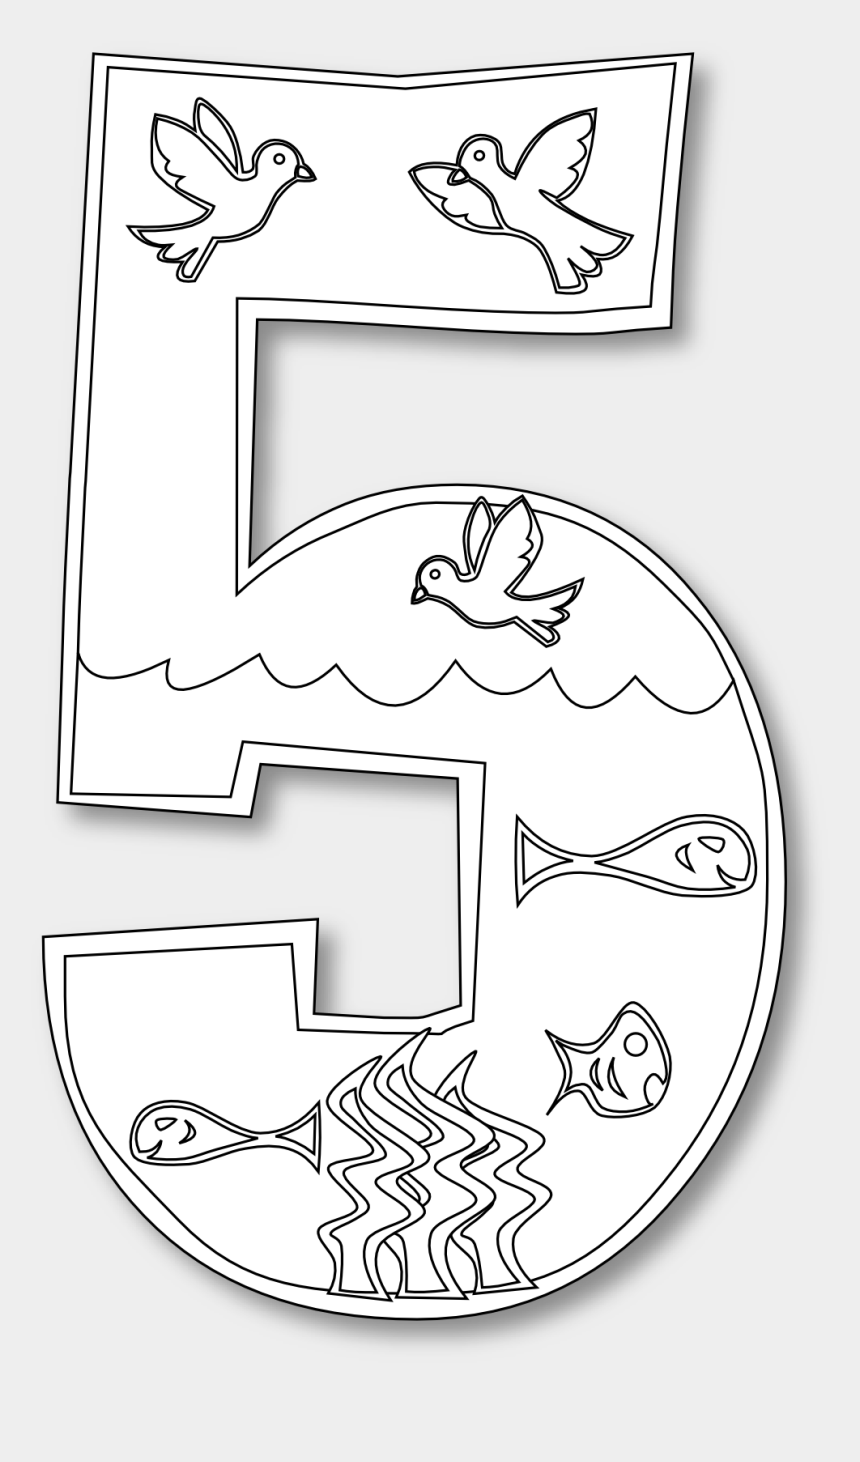 creation clipart, Cartoons - Coloring Pages For Children Is A Wonderful Ⓒ - Day 1 Of Creation Colouring Pages